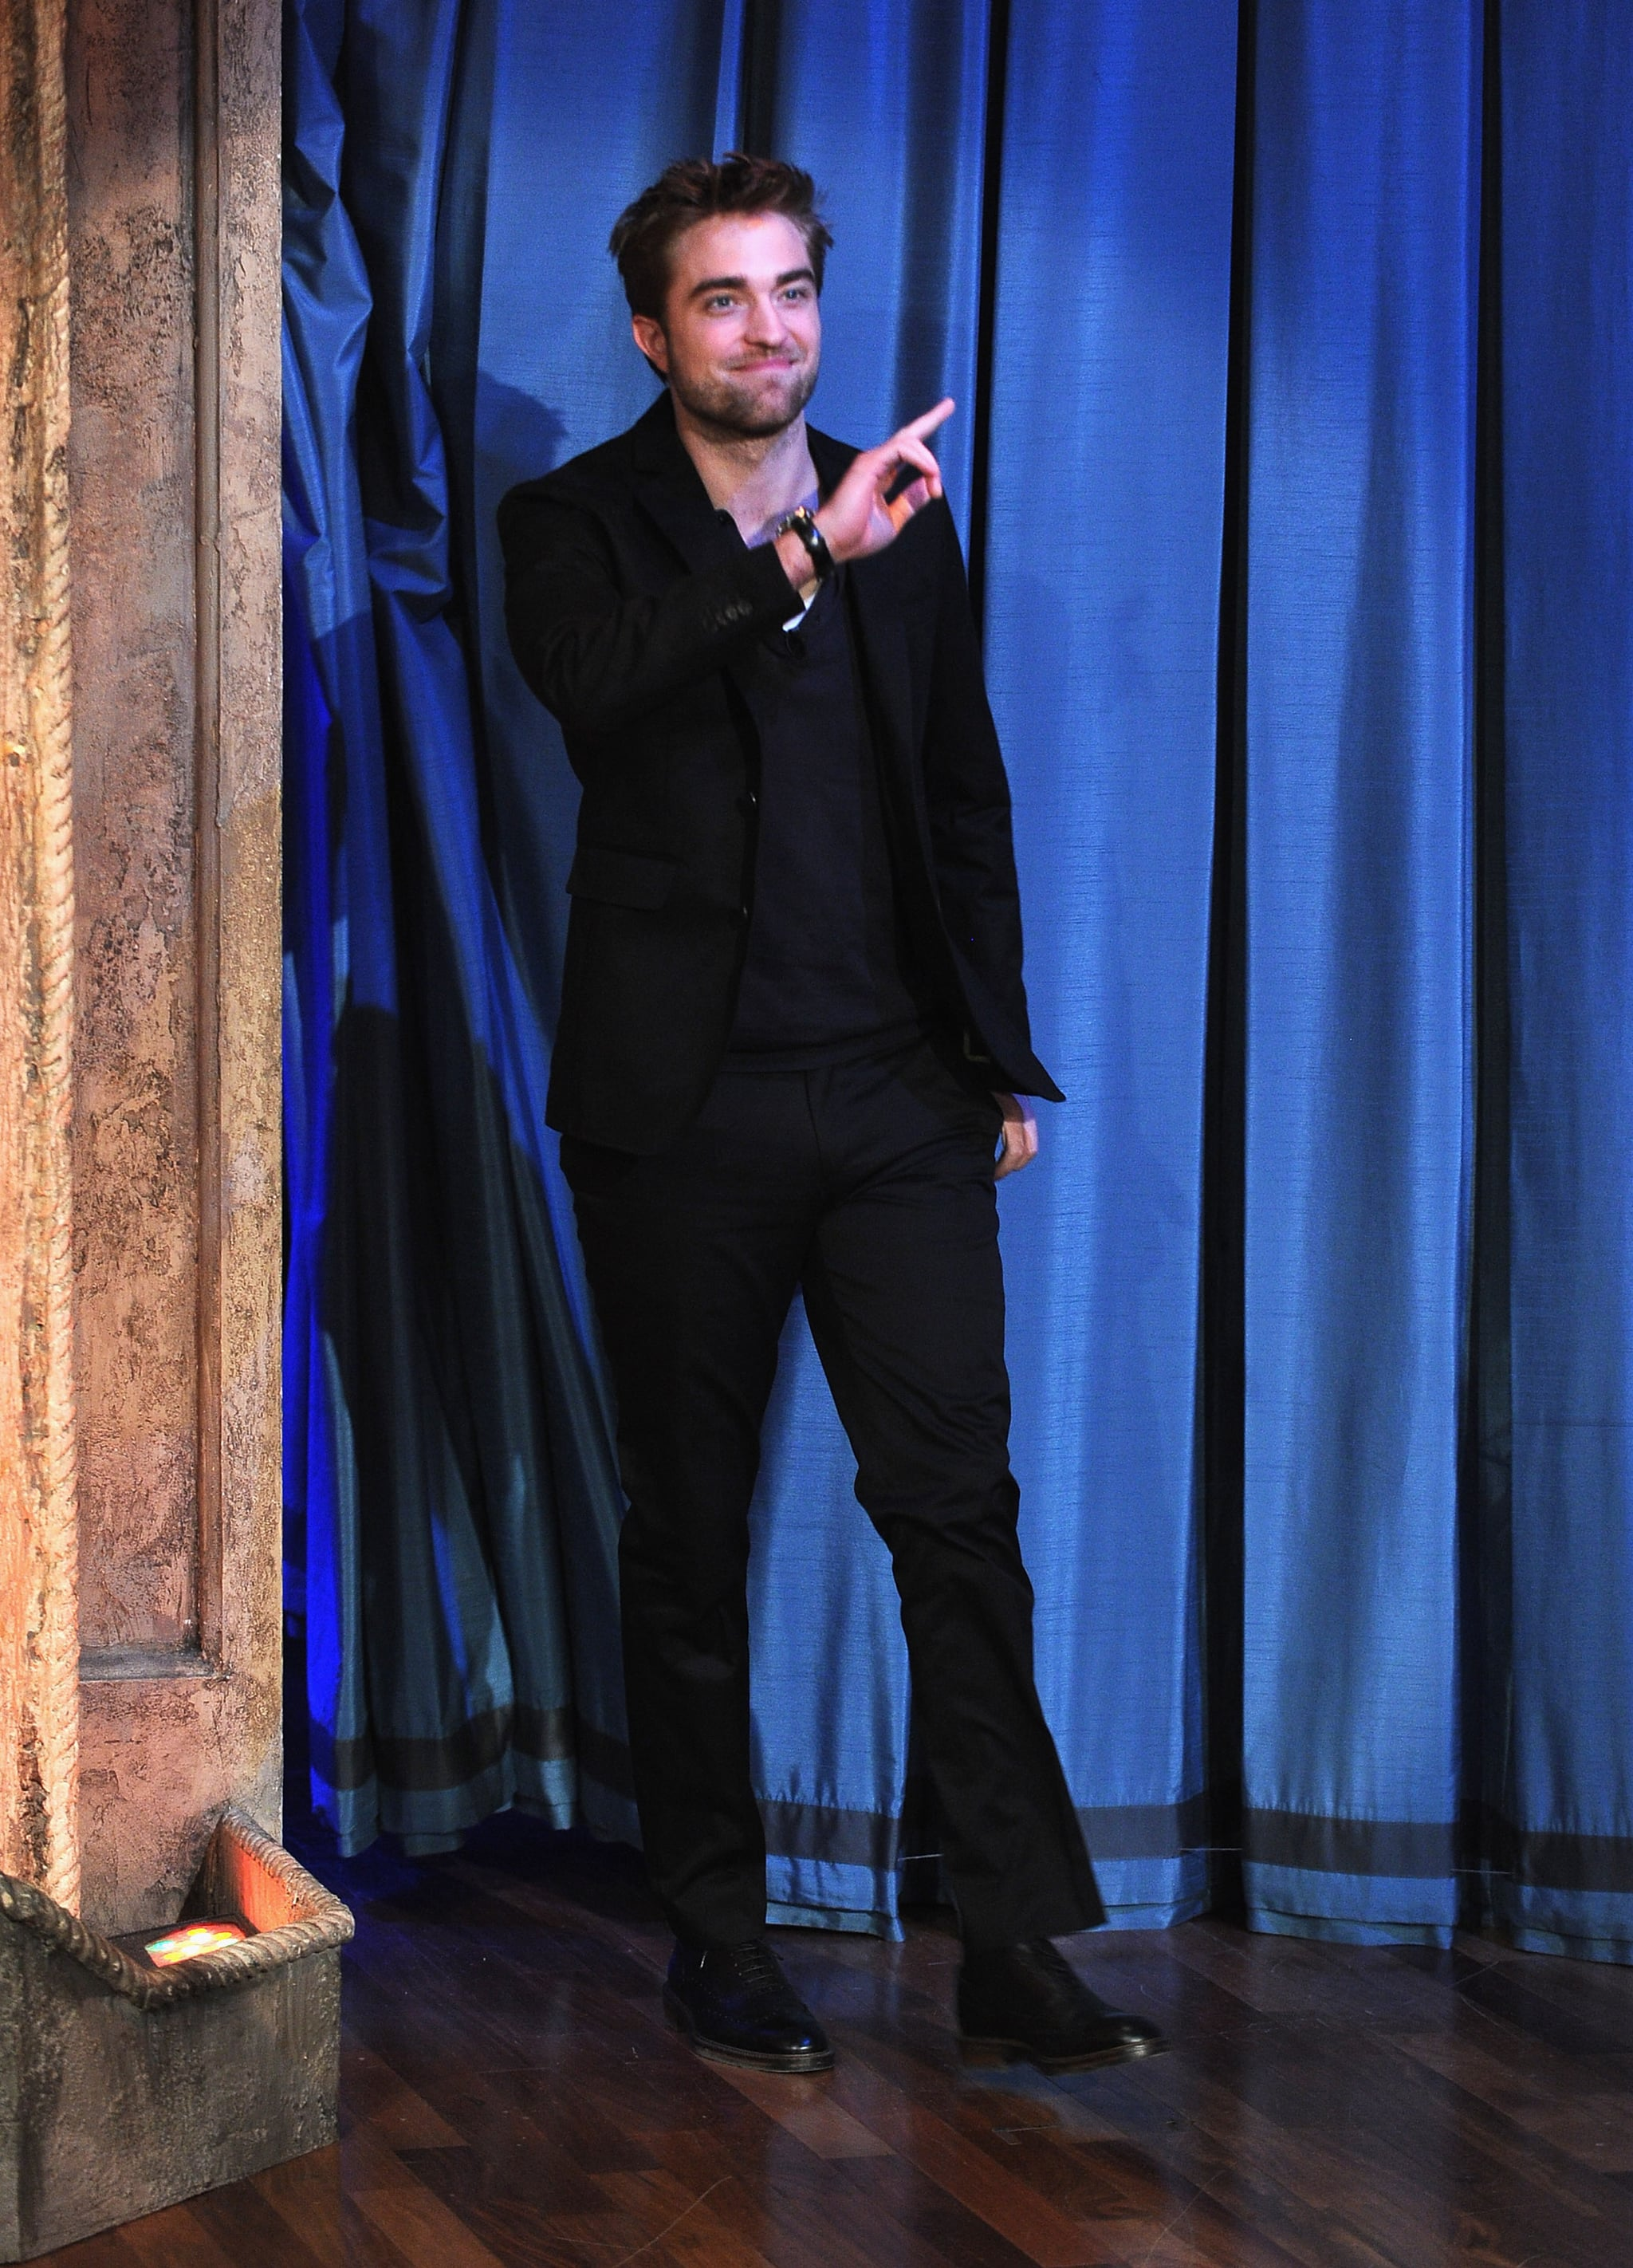 Rob stepped onto the stage and waved to the crowd.